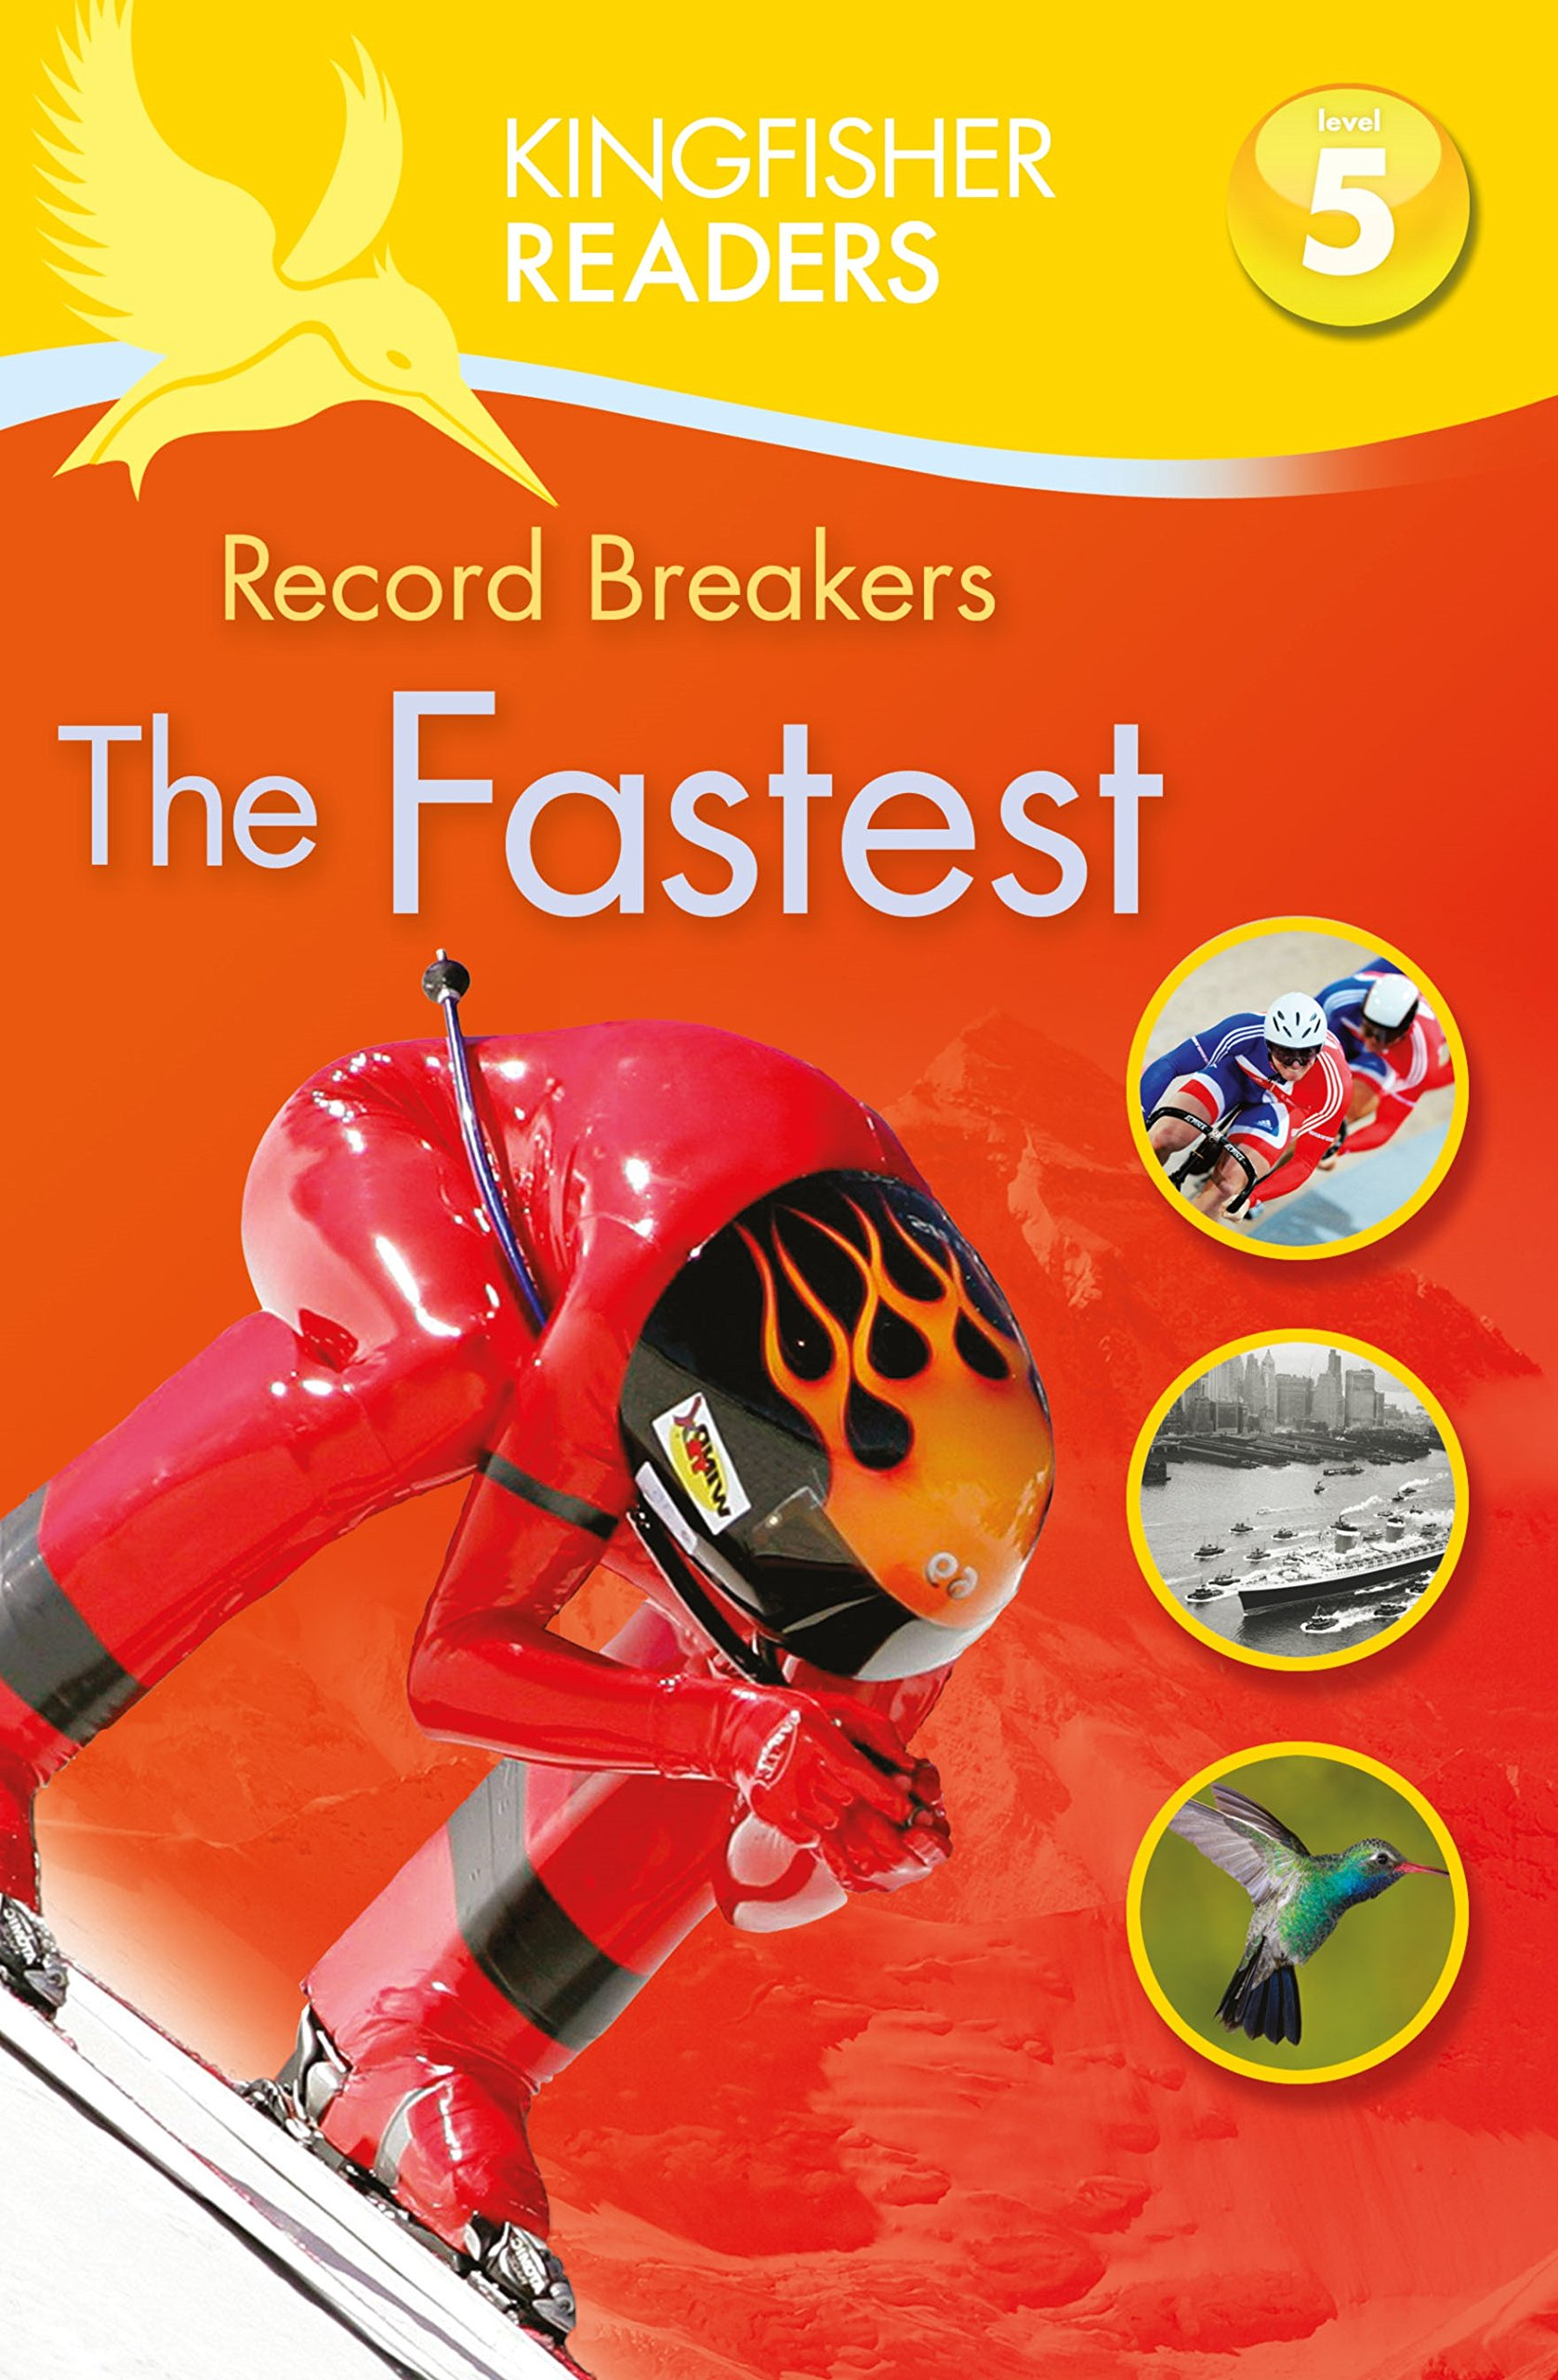 Kingfisher Readers: Record Breakers - The Fastest (Level 5: Reading Fluently) reading literacy for adolescents